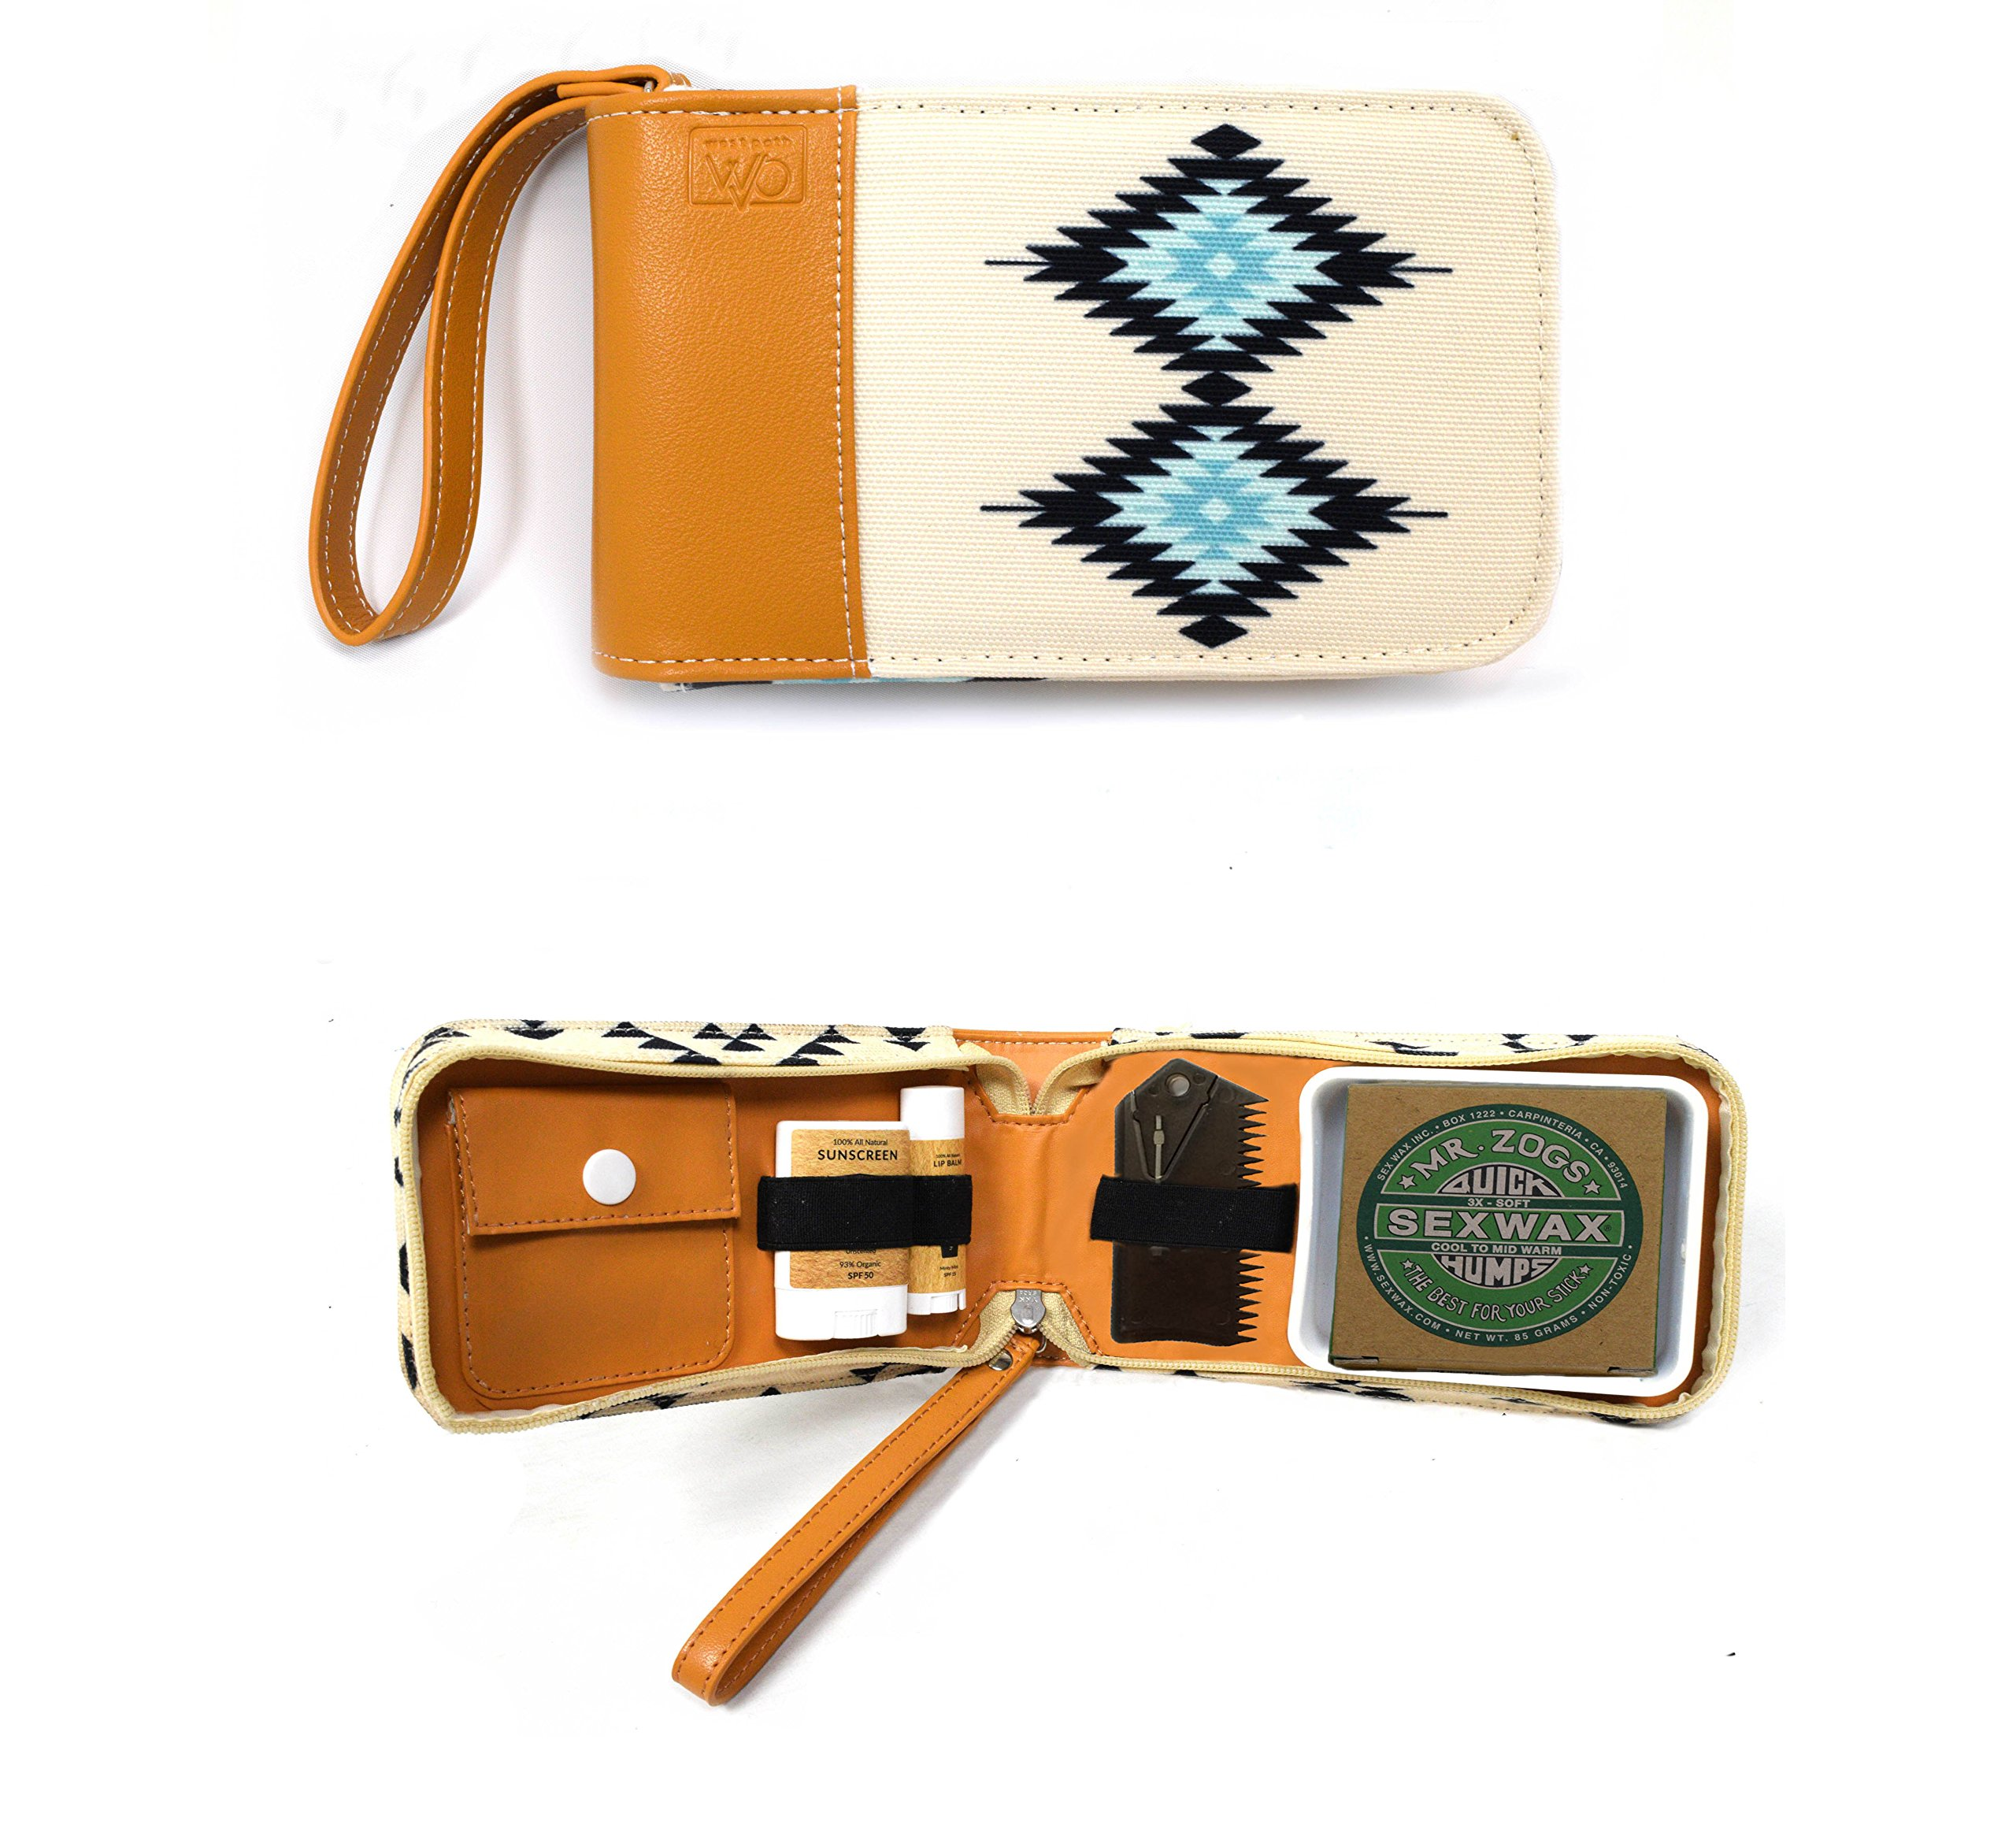 Surf Kit - A Great Surfer Gift & Surf Accessory that Holds your Sex Wax, Organic Sunscreen Face Stick, All Natural Lip Balm, Wax Scraper, and More! All in a Stylish Navajo Design Surf Wax Holder!